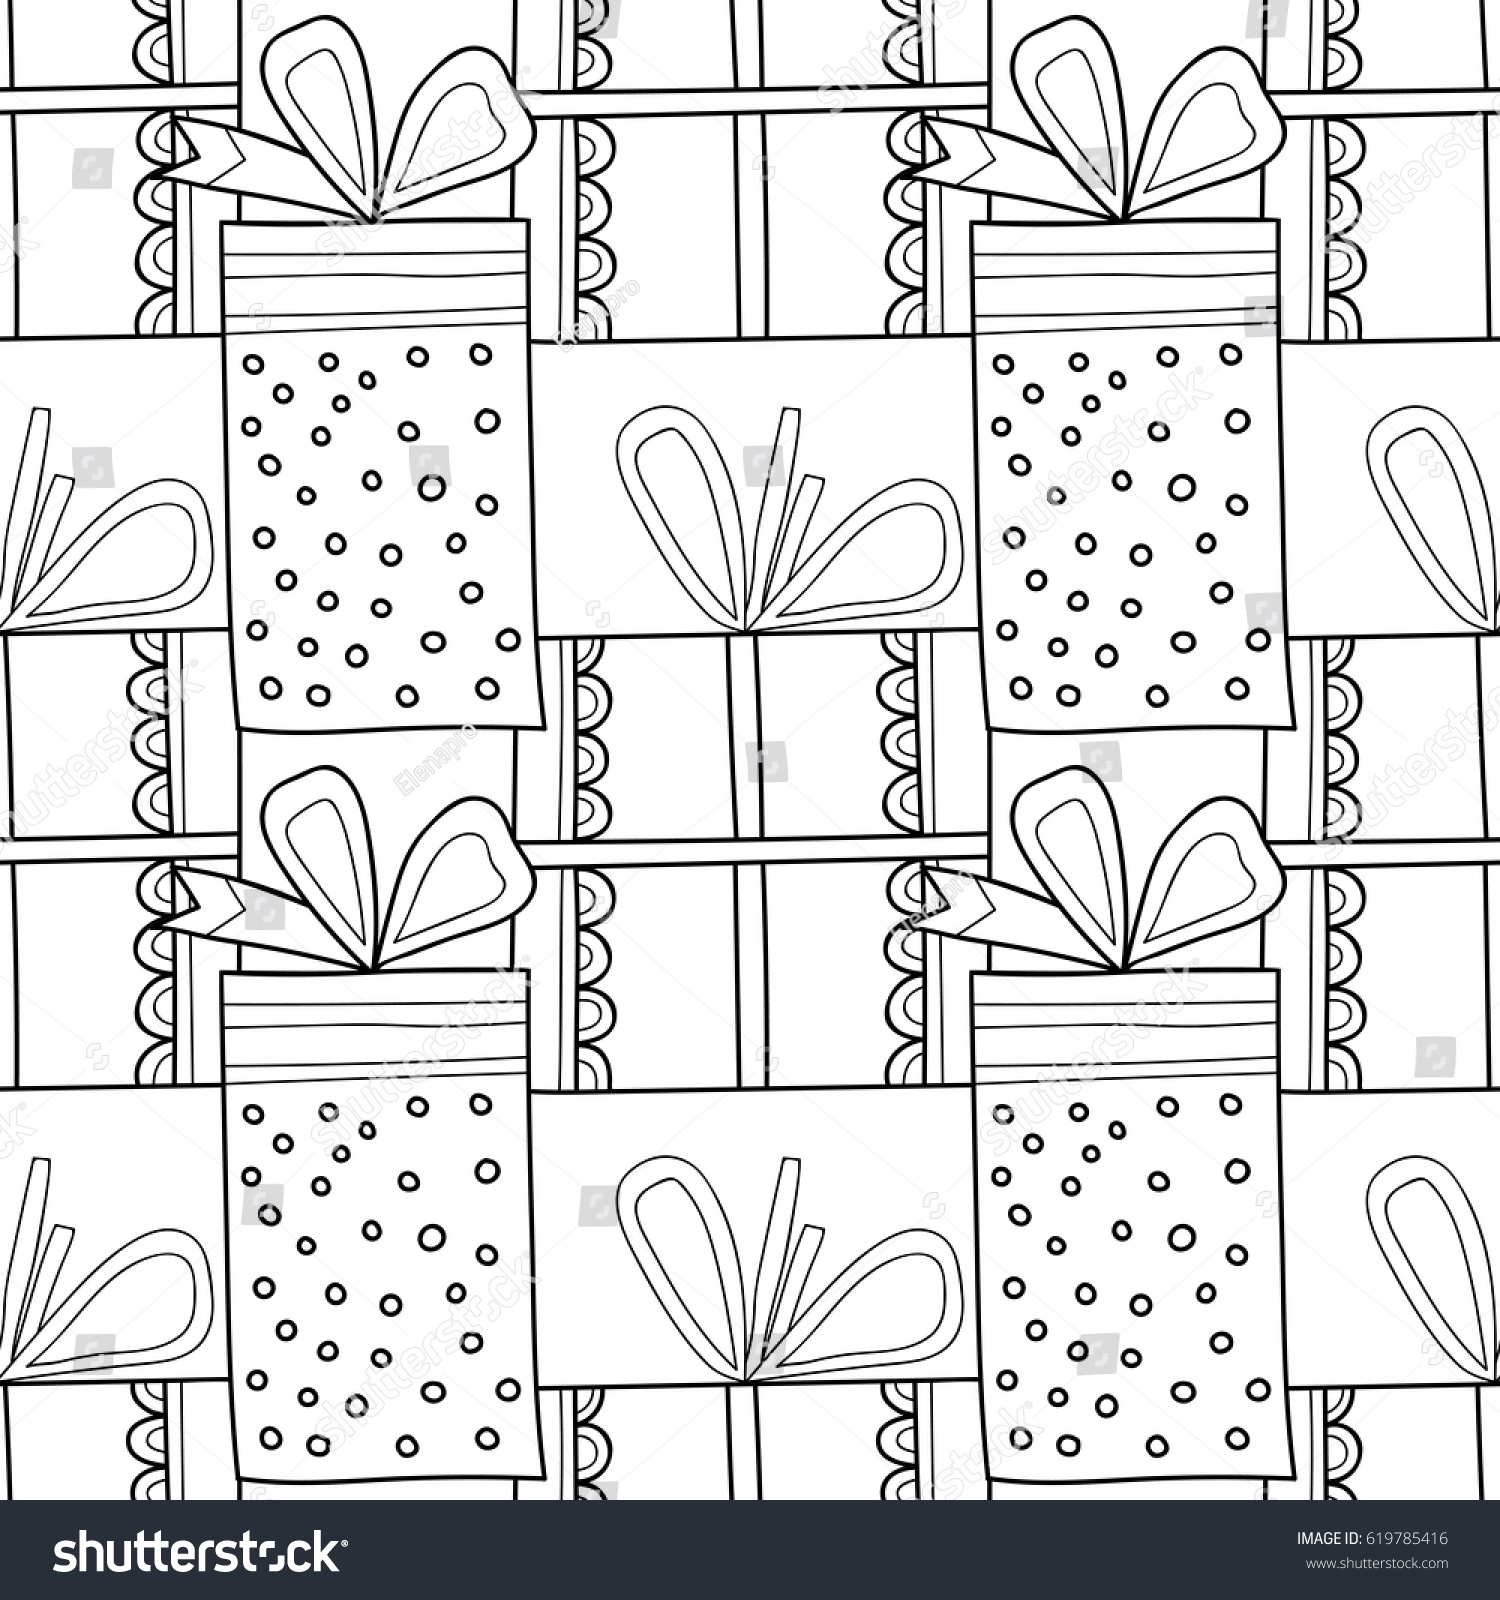 black white seamless patterns gift boxes stock vector 619785416